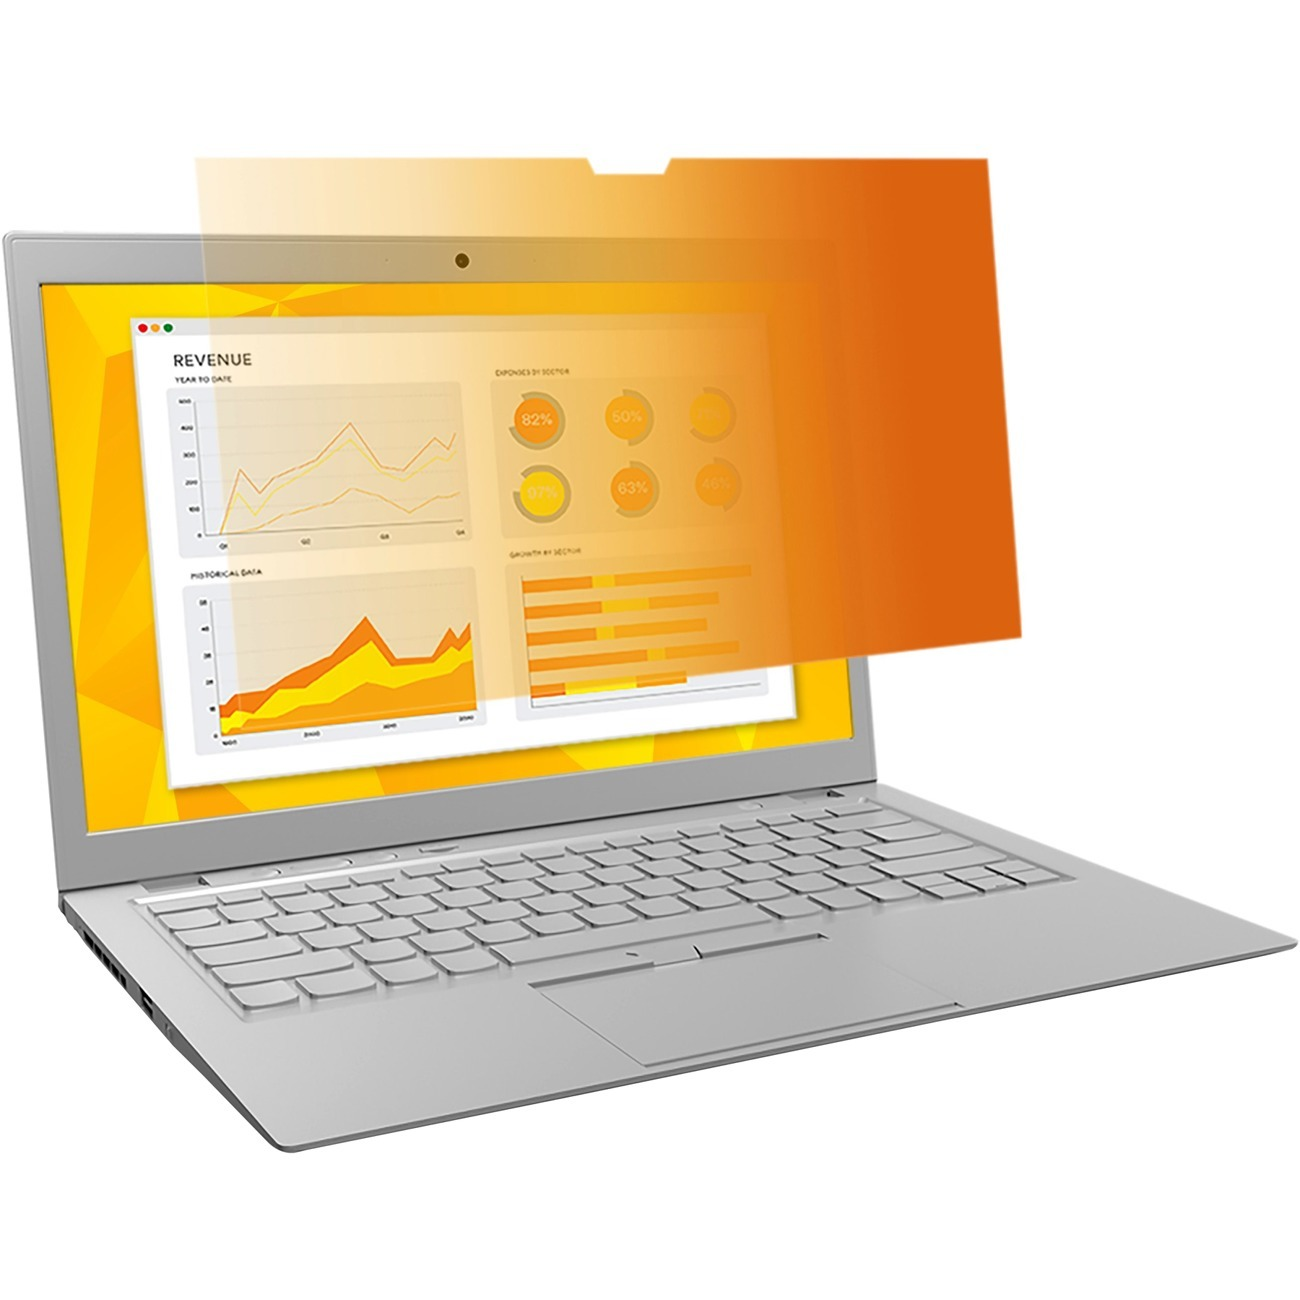 """3M, MMMGF141W1B, Gold Privacy Filter for 14.1"""" Widescreen Laptop (16:10) (GF141W1B), Gold,Glossy"""